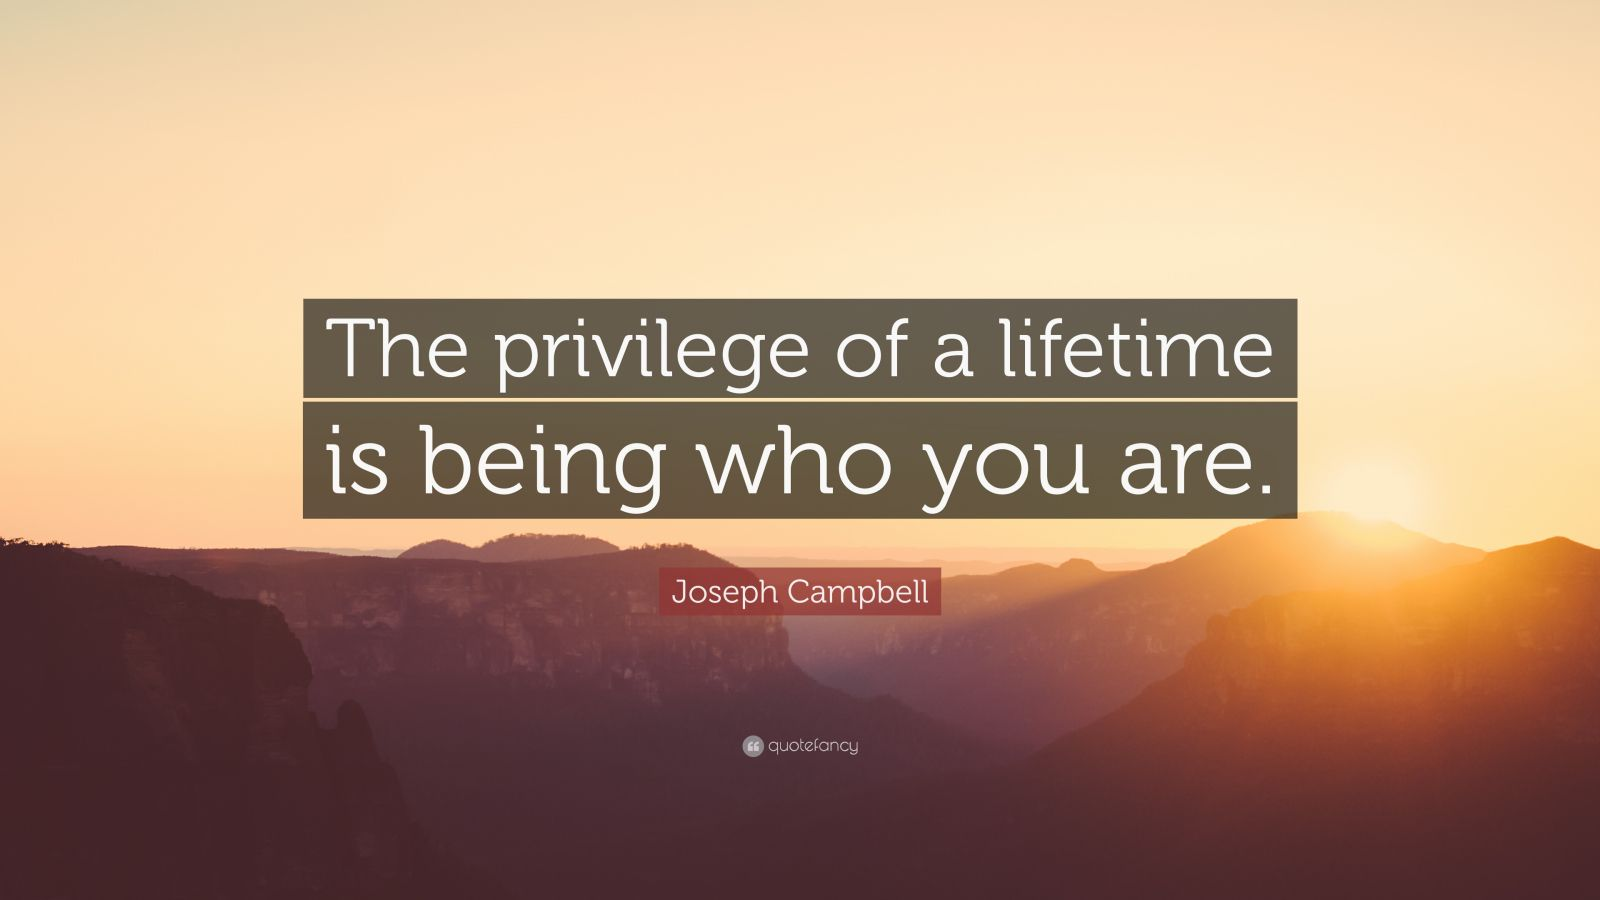 Images Of Inspiring Quotes Wallpaper Joseph Campbell Quote The Privilege Of A Lifetime Is